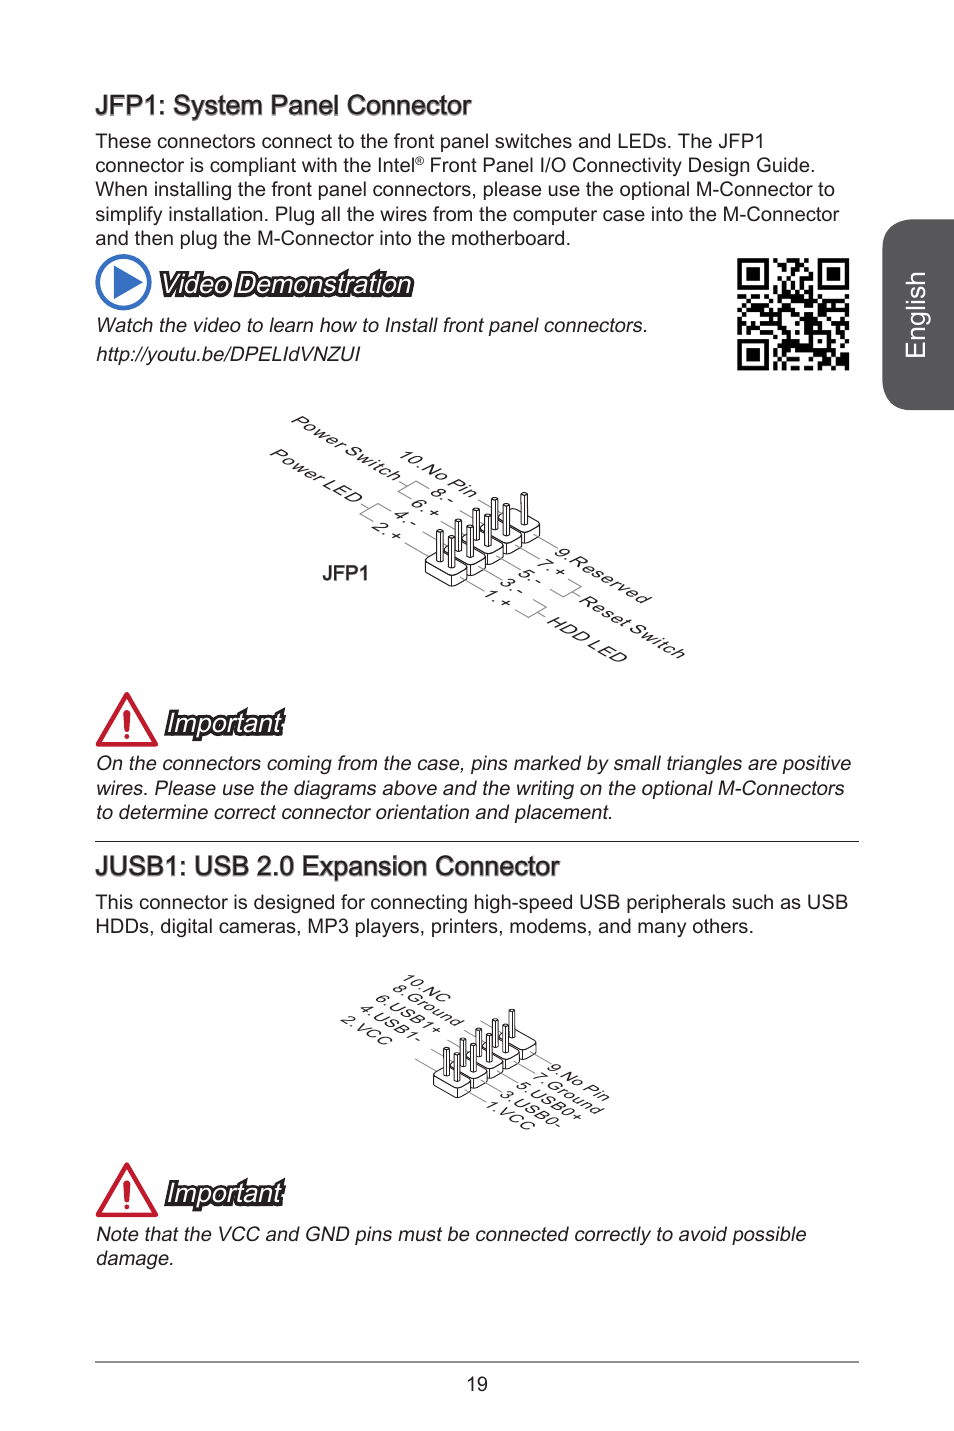 hight resolution of english jfp system panel connector video demonstration msi residential electrical wiring diagrams english